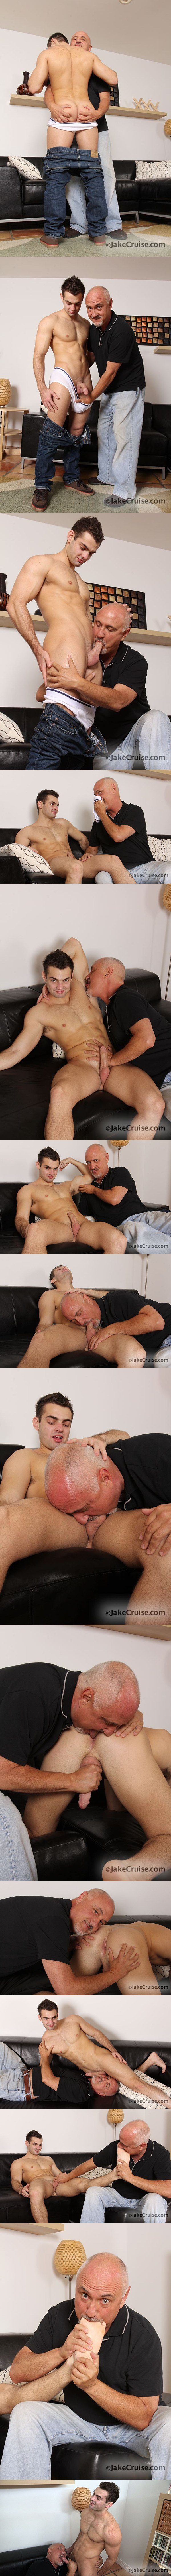 Scotty Dean gets touched, rimmed and serviced Jakecruise 02